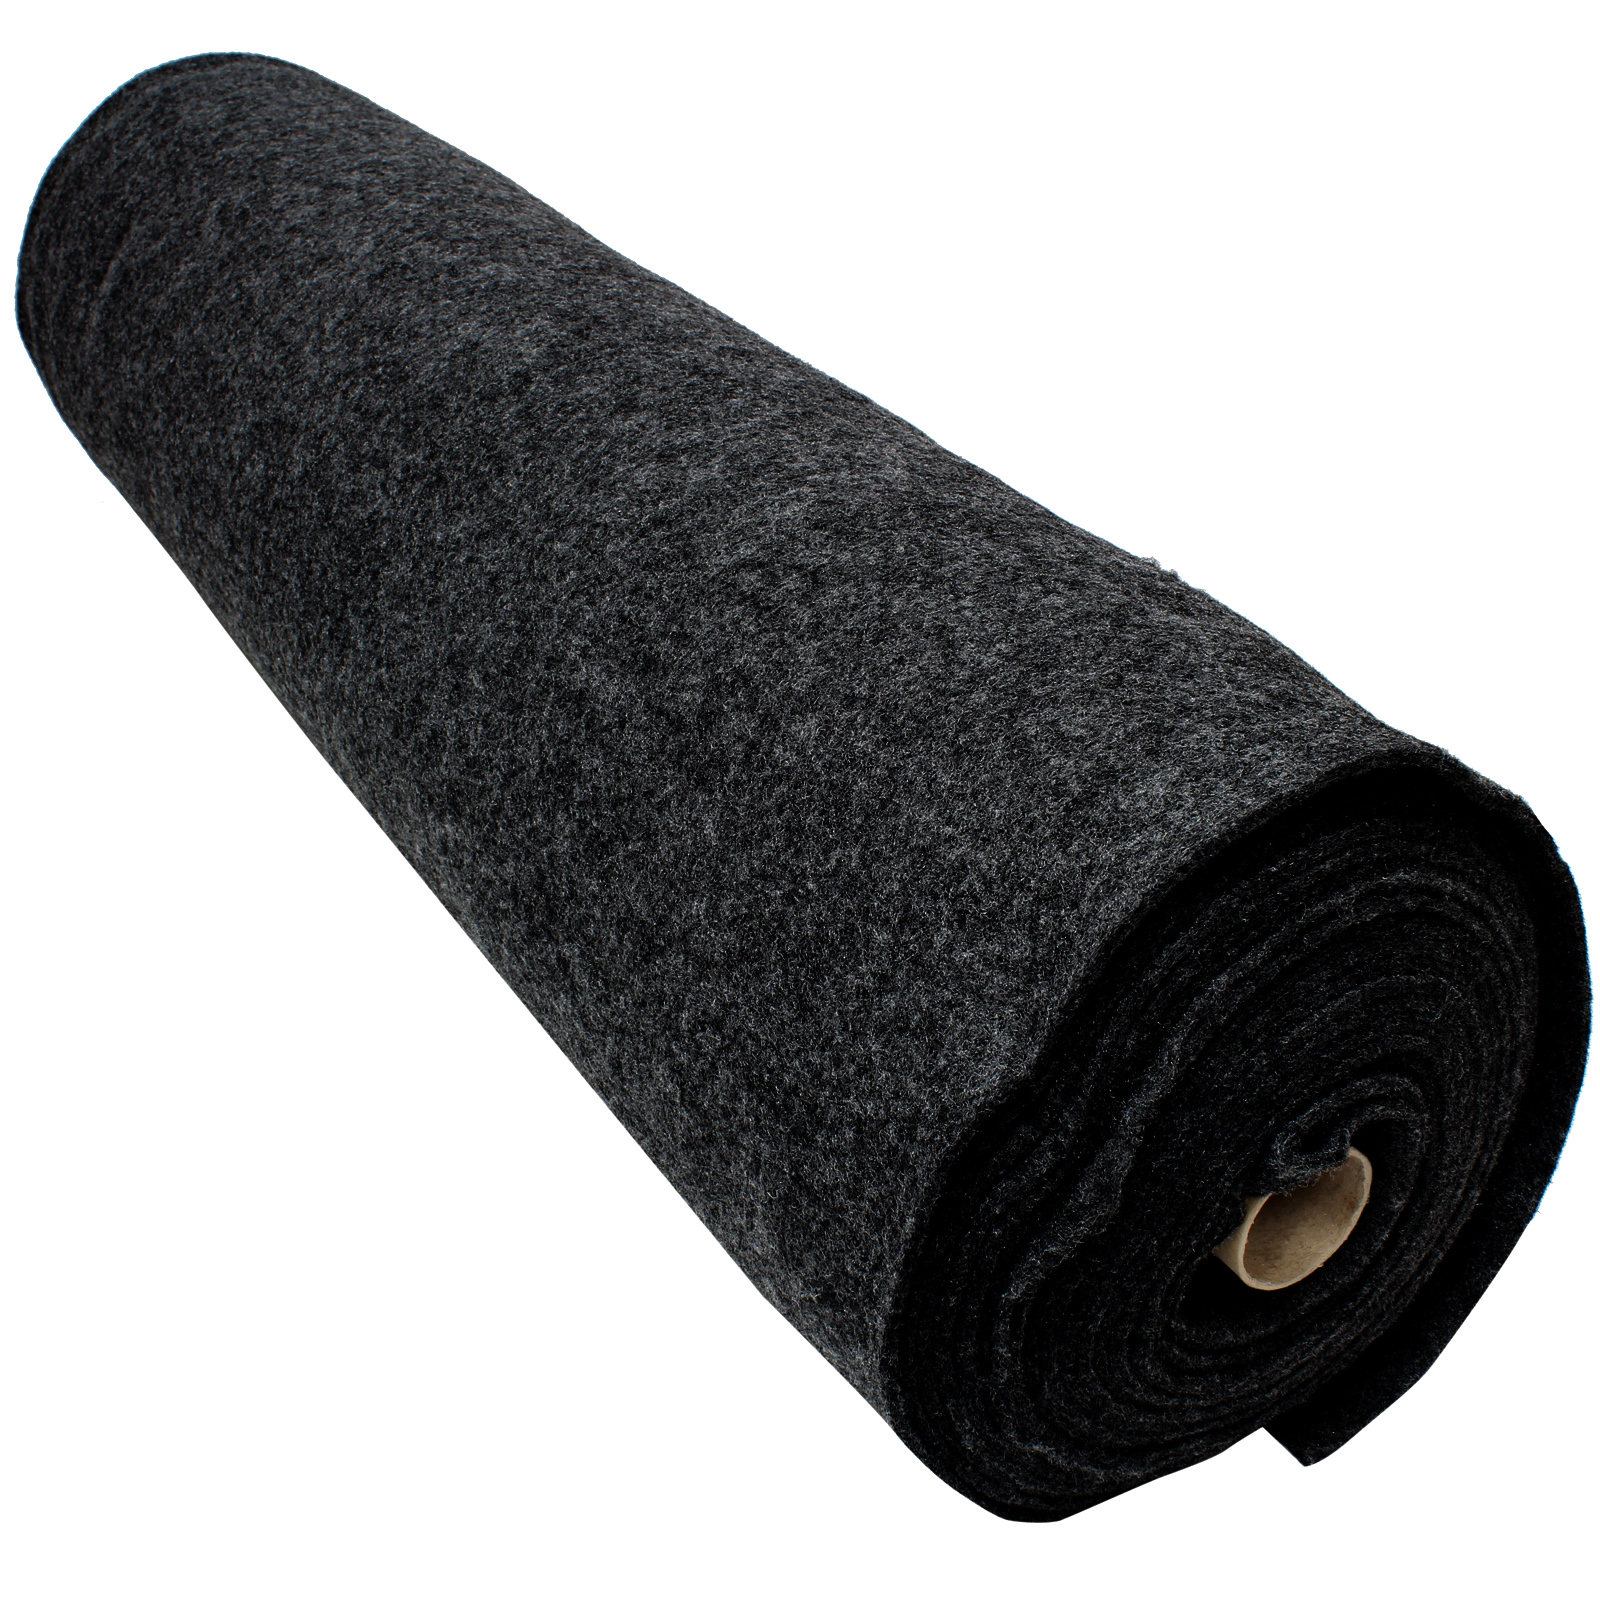 Black Car Carpet Roll